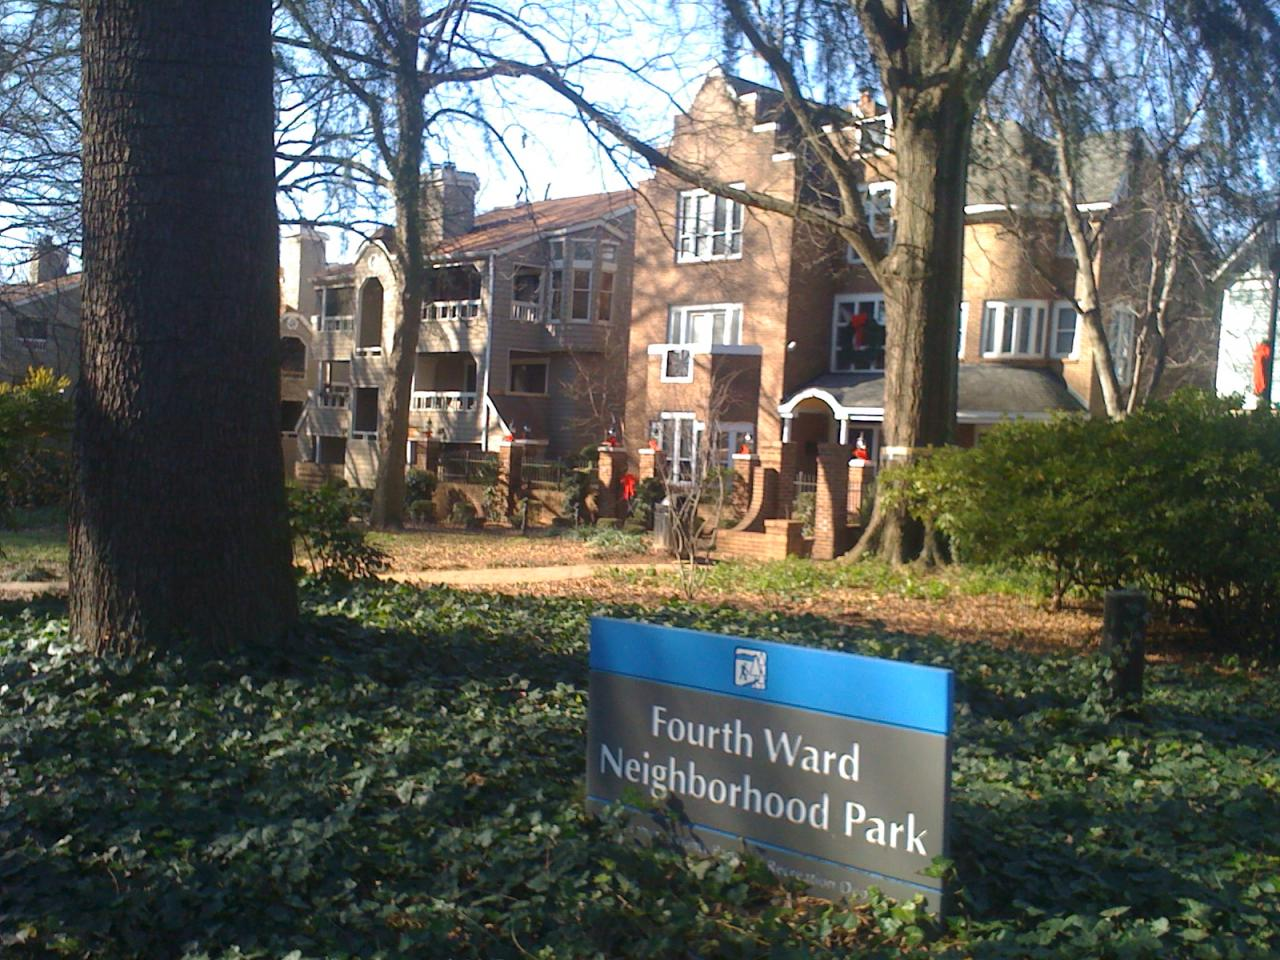 Fourth Ward Neighborhood Park